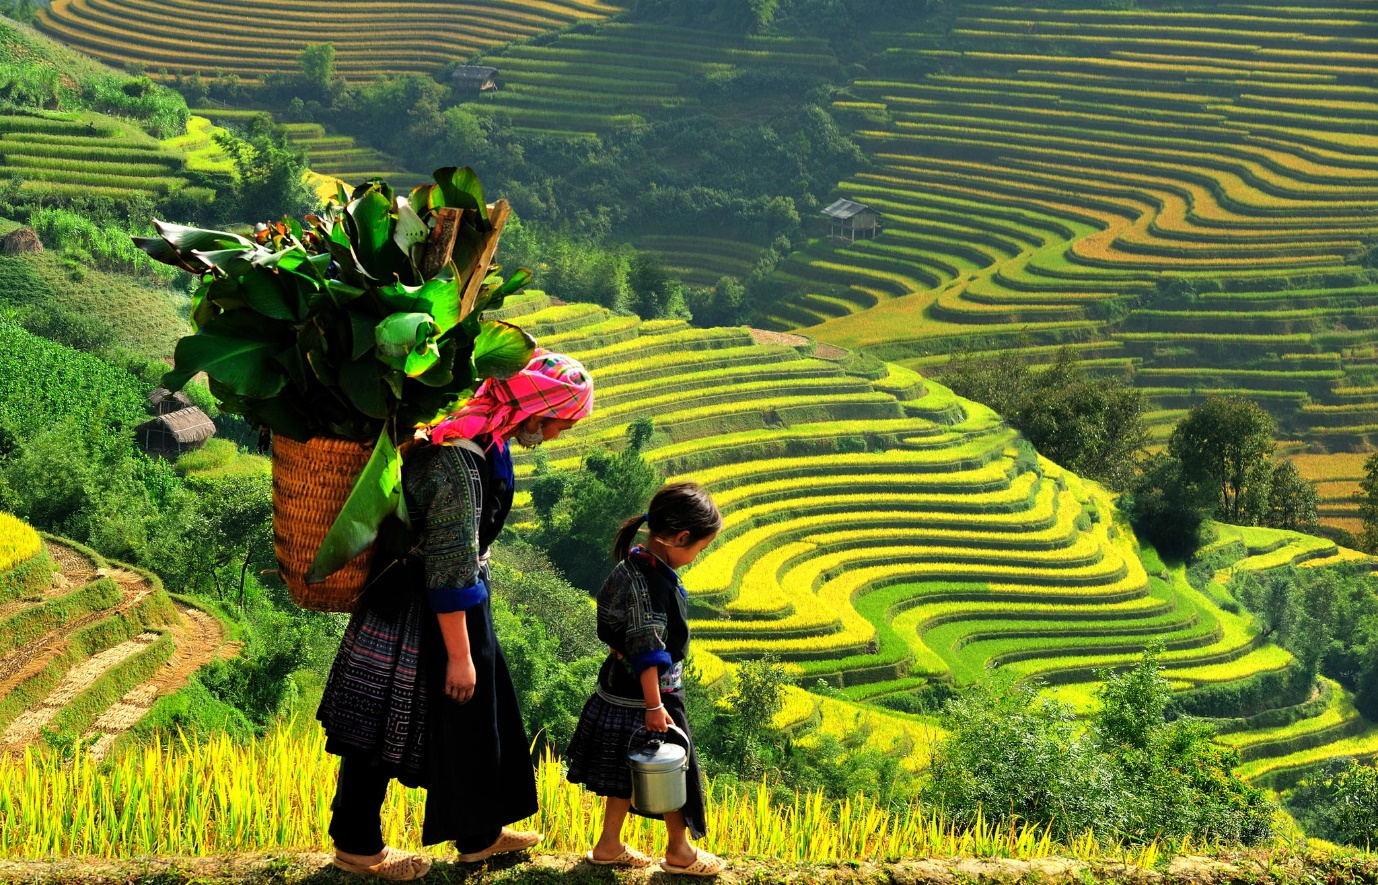 Picturesque mountain scenery and brocade colors of ethnic minority people